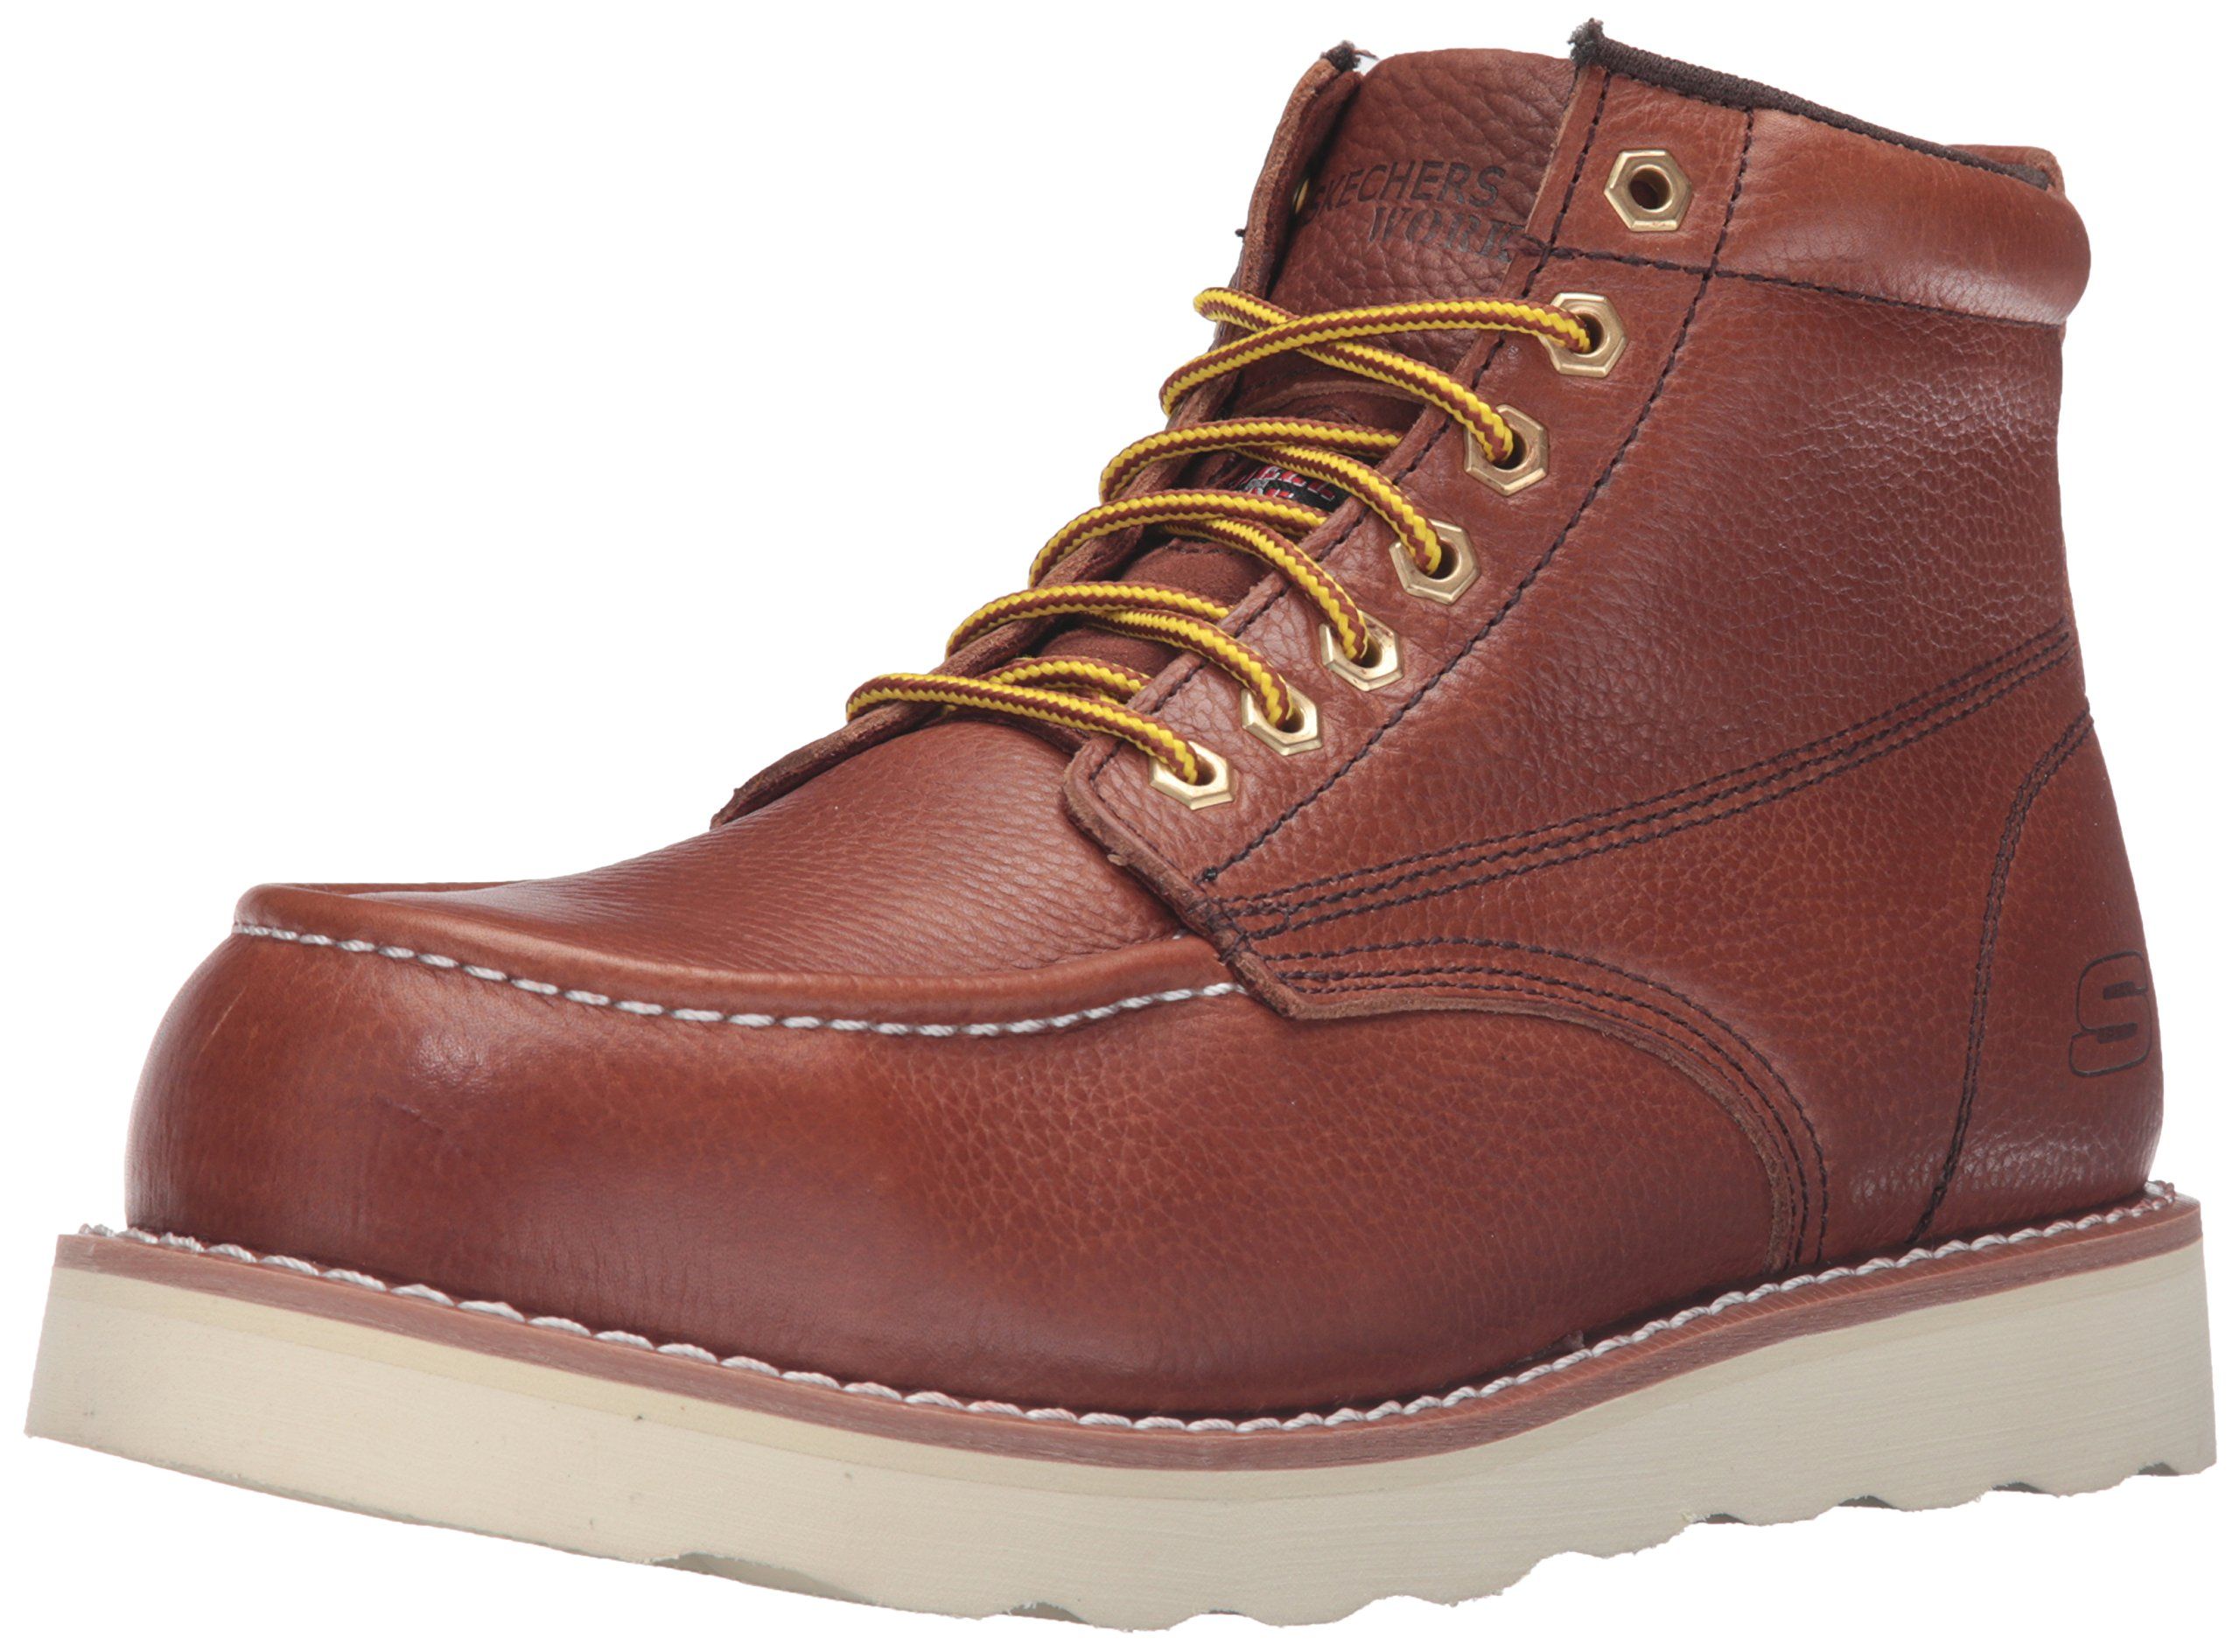 Skechers for Work Men's Pettus Grafford Work Boot,Red Brown,10.5 M US